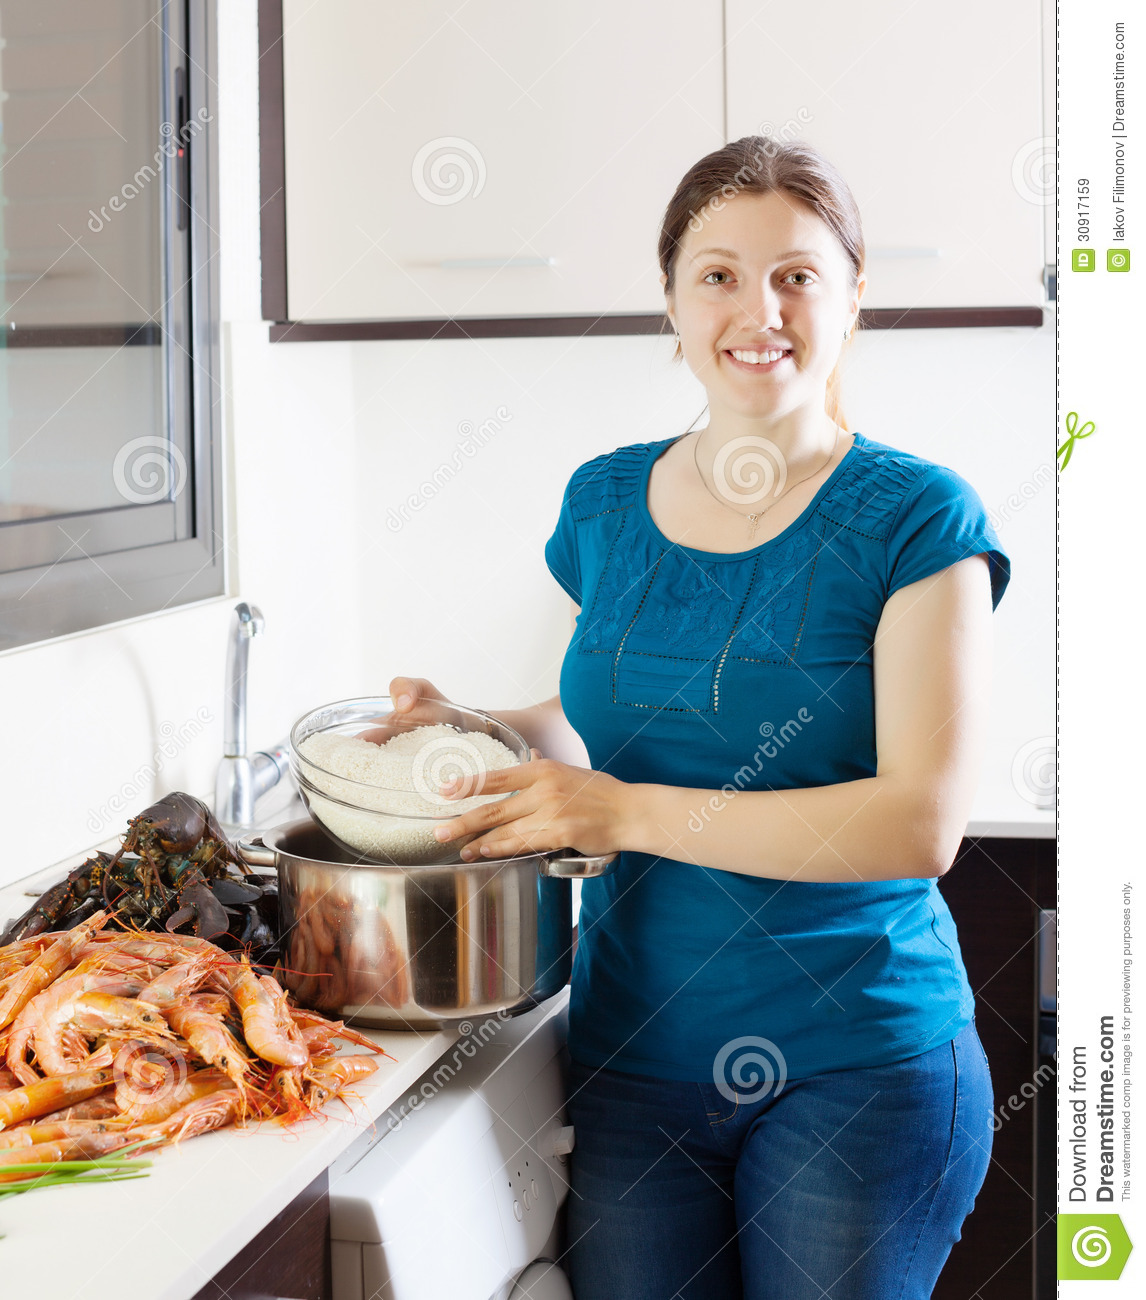 Women Kitchen: Happy Woman Cooking Paella Stock Image. Image Of Cooking